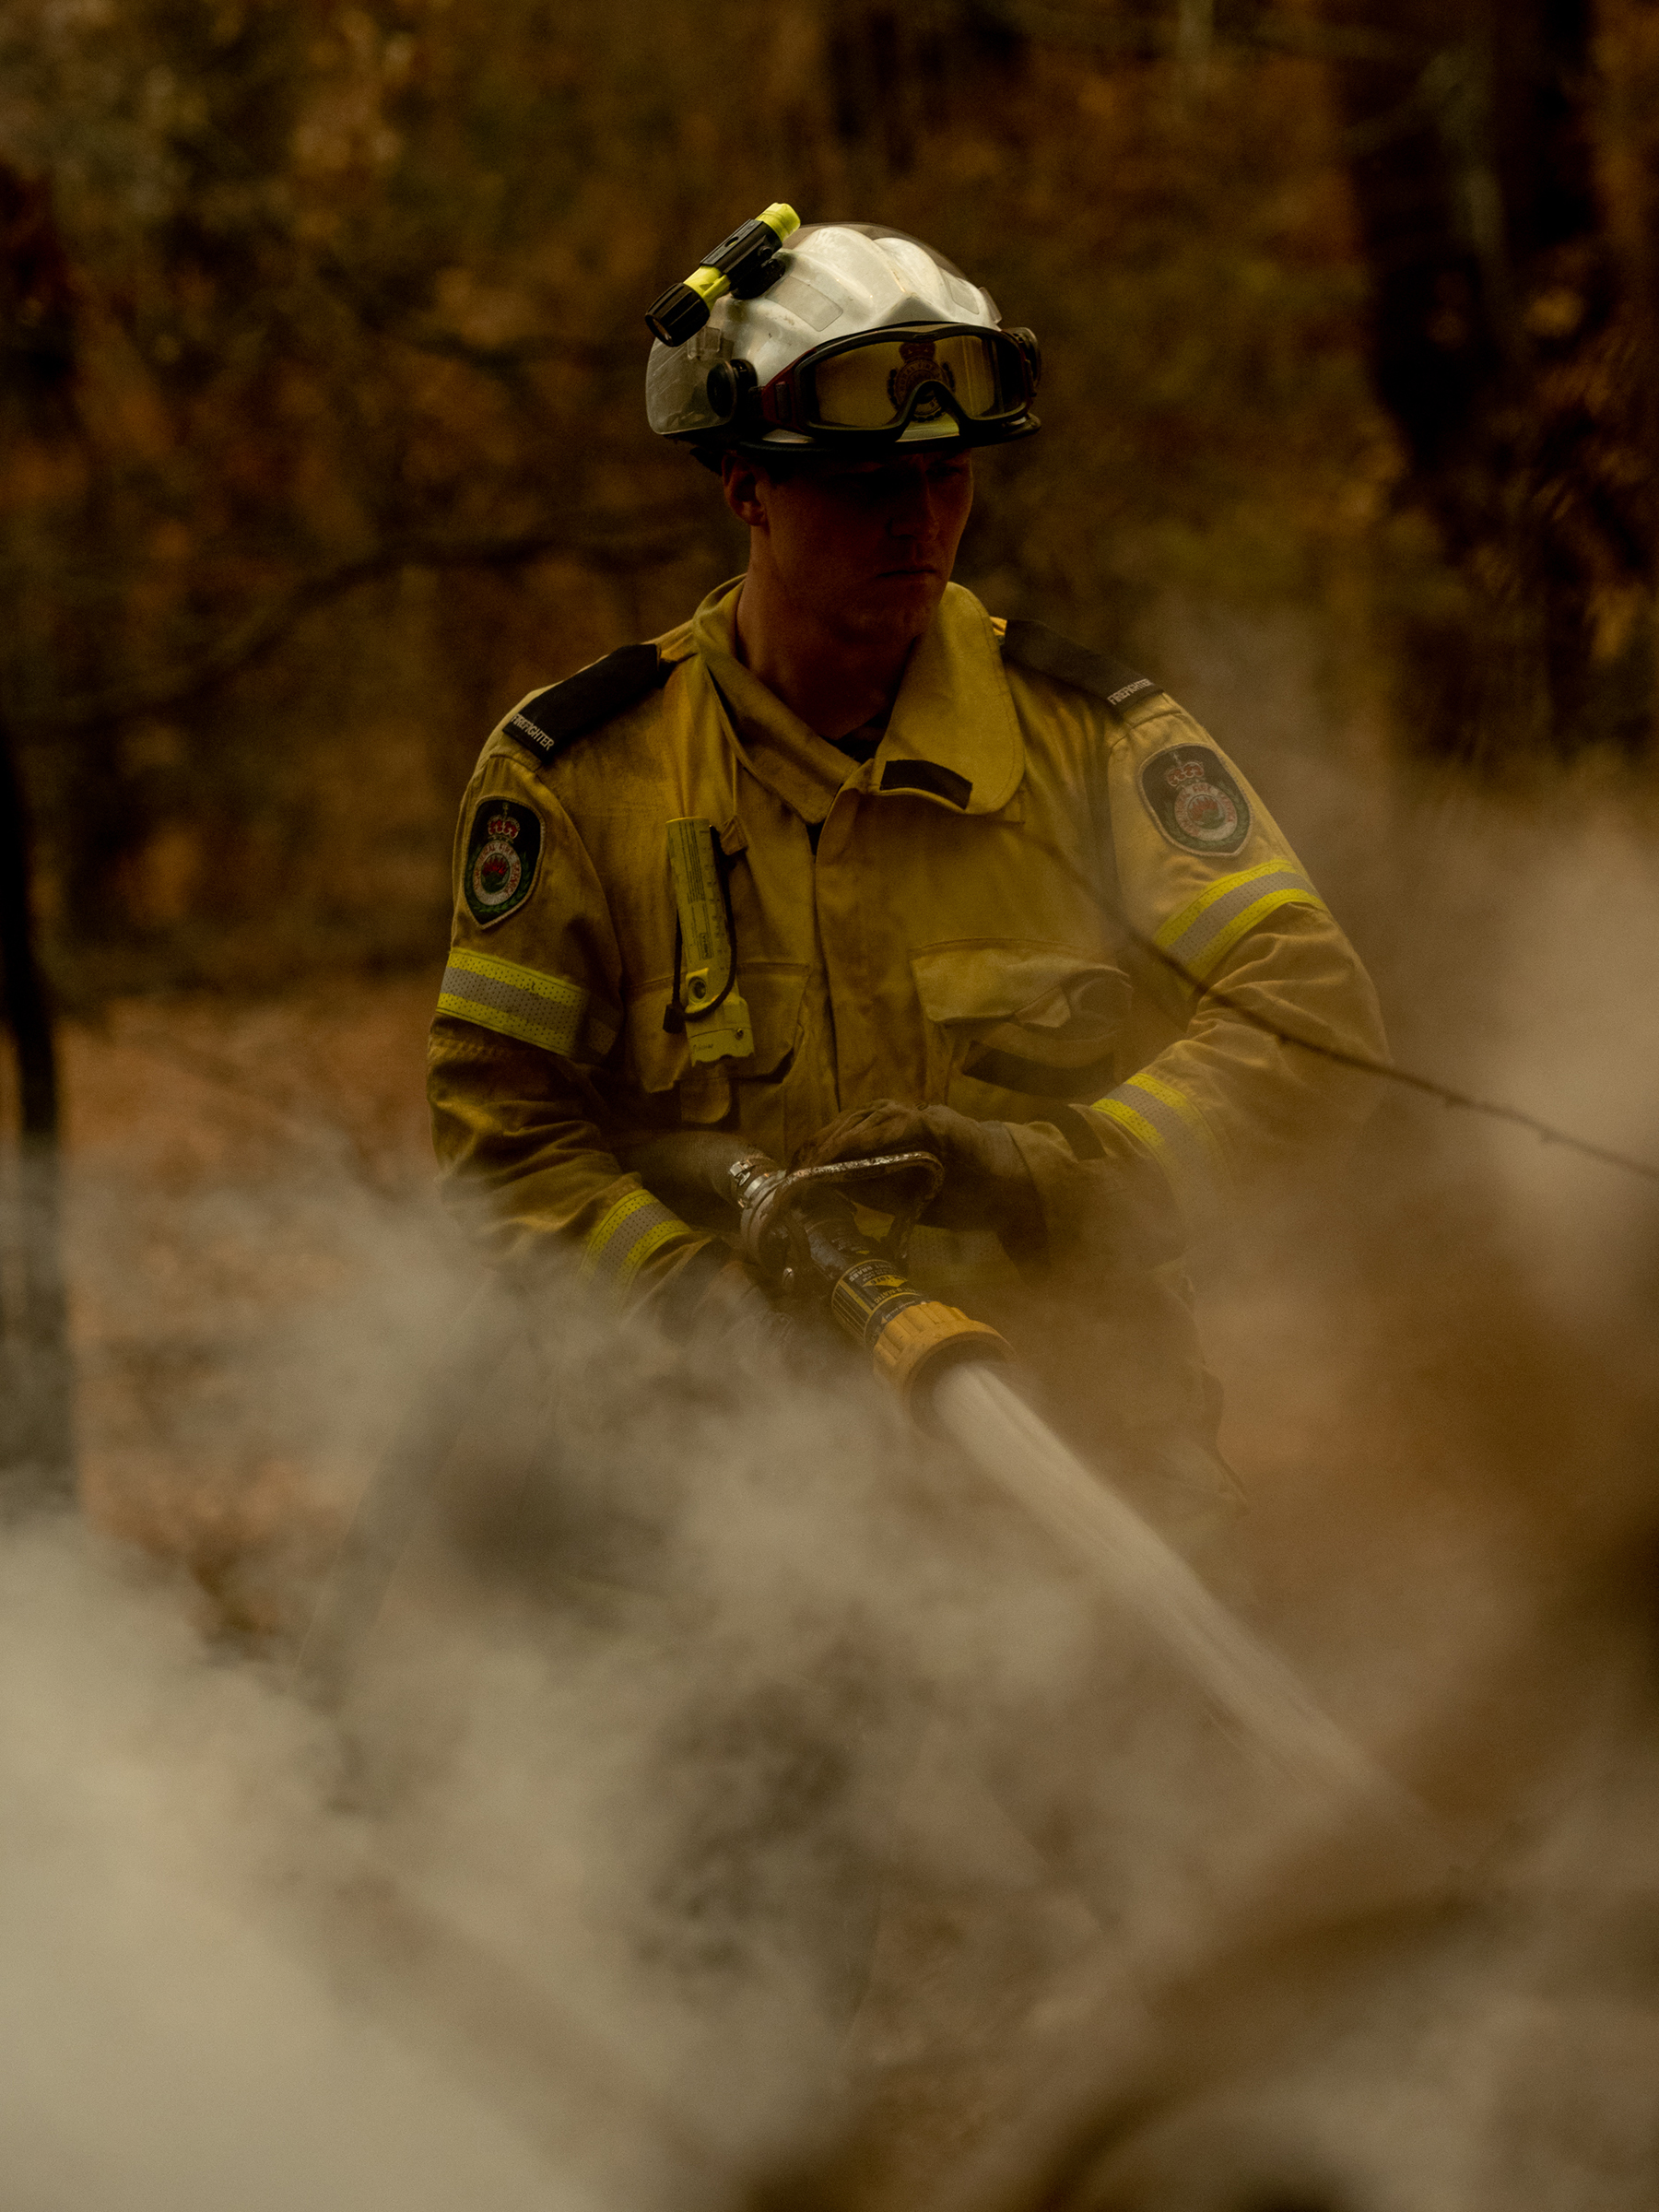 A New South Wales Rural Fire Service (RFS) member fights a fire in Lake Innes, Australia on Dec. 6, 2019.